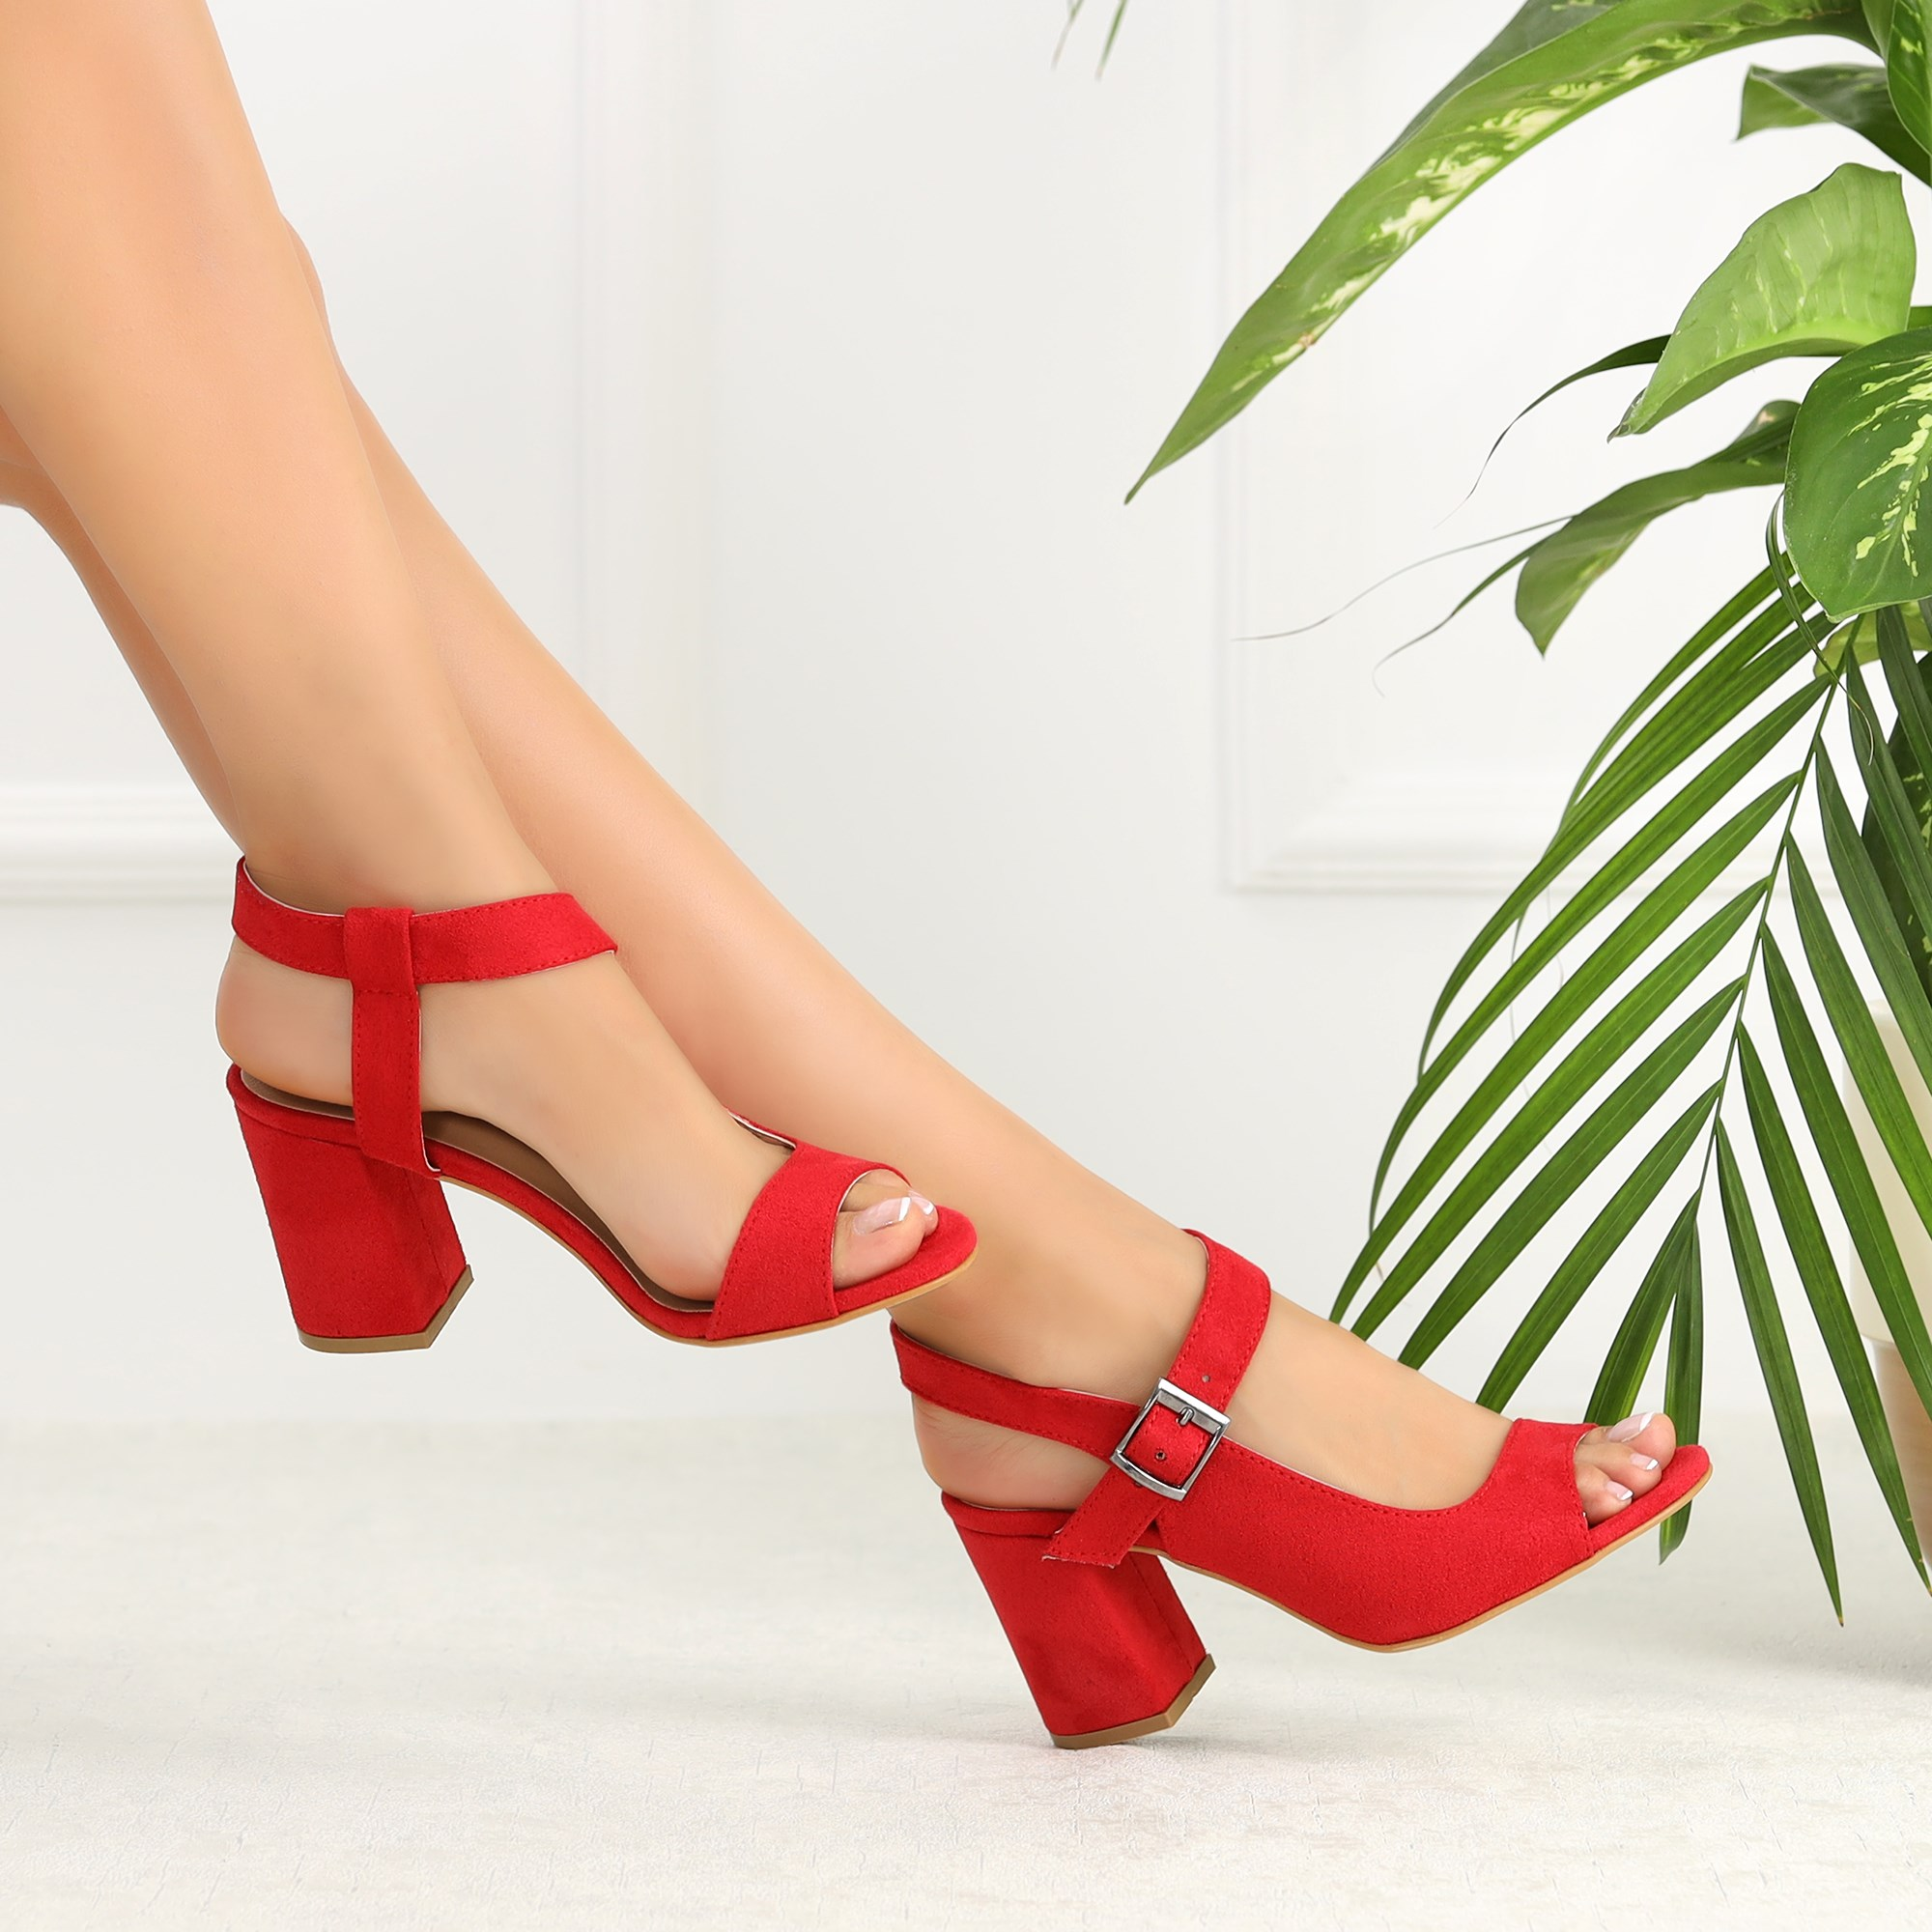 Malip Suede Red Thick Heels Sandals